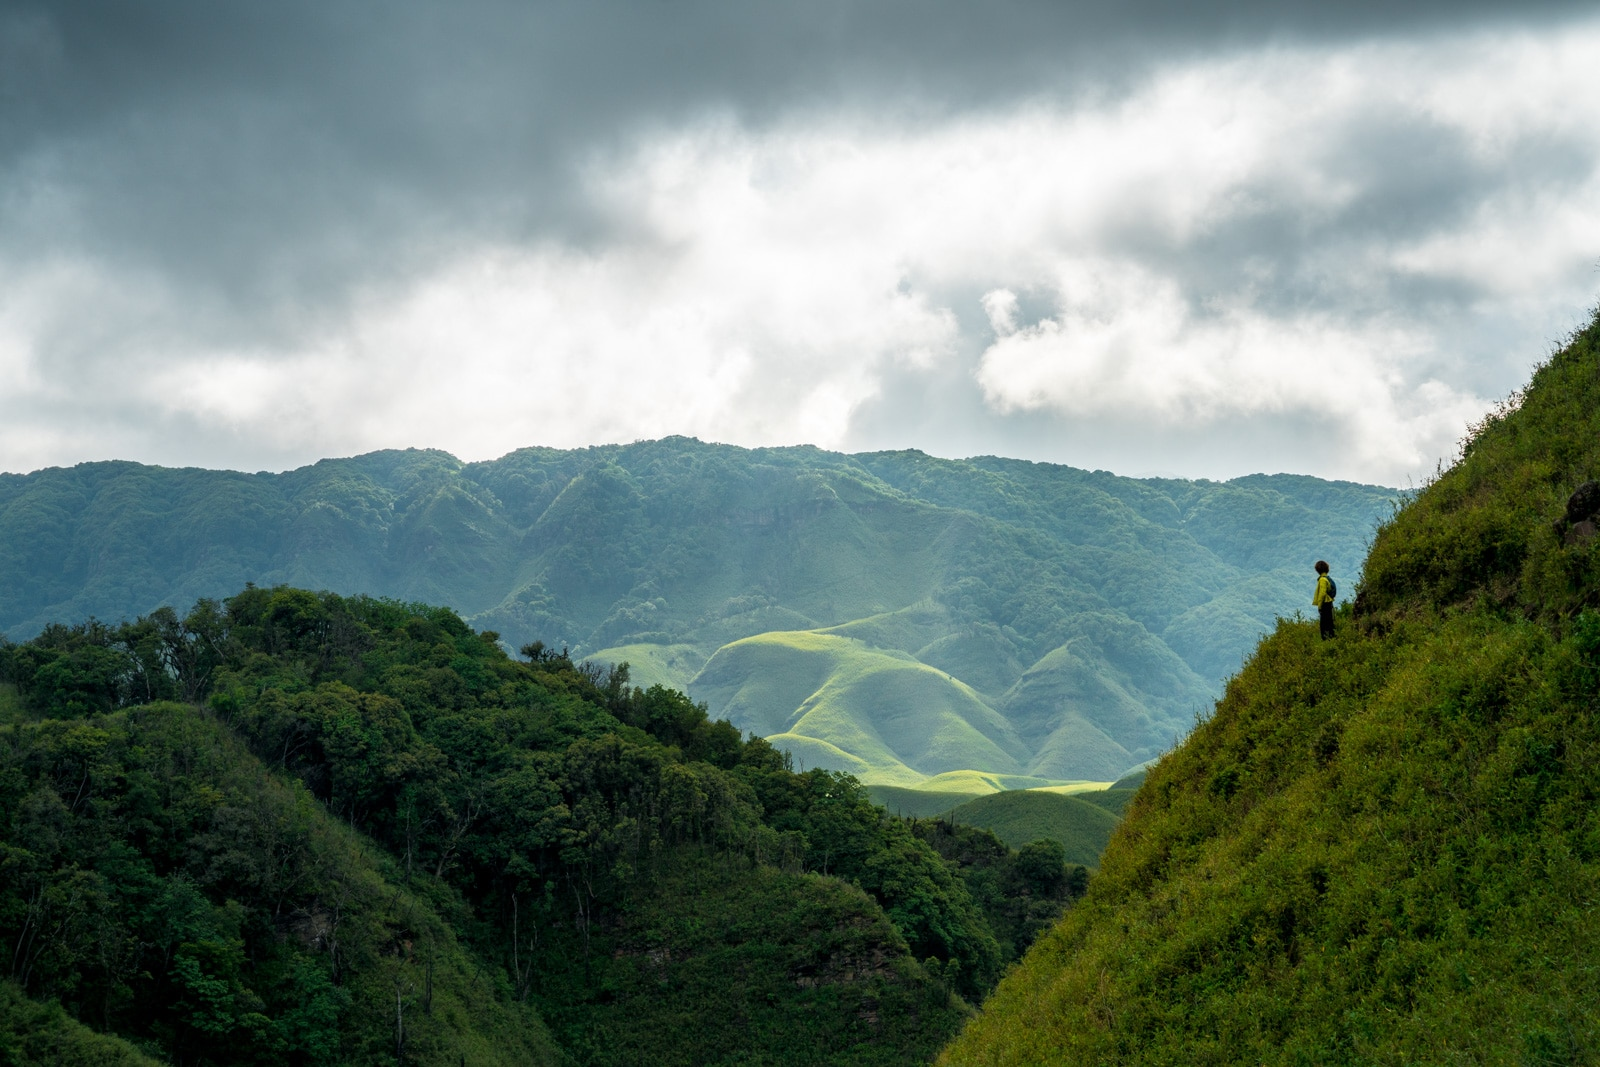 How to get to Dzukou Valley from Nagaland, India - Hiking in to Dzukou Valley - Lost With Purpose